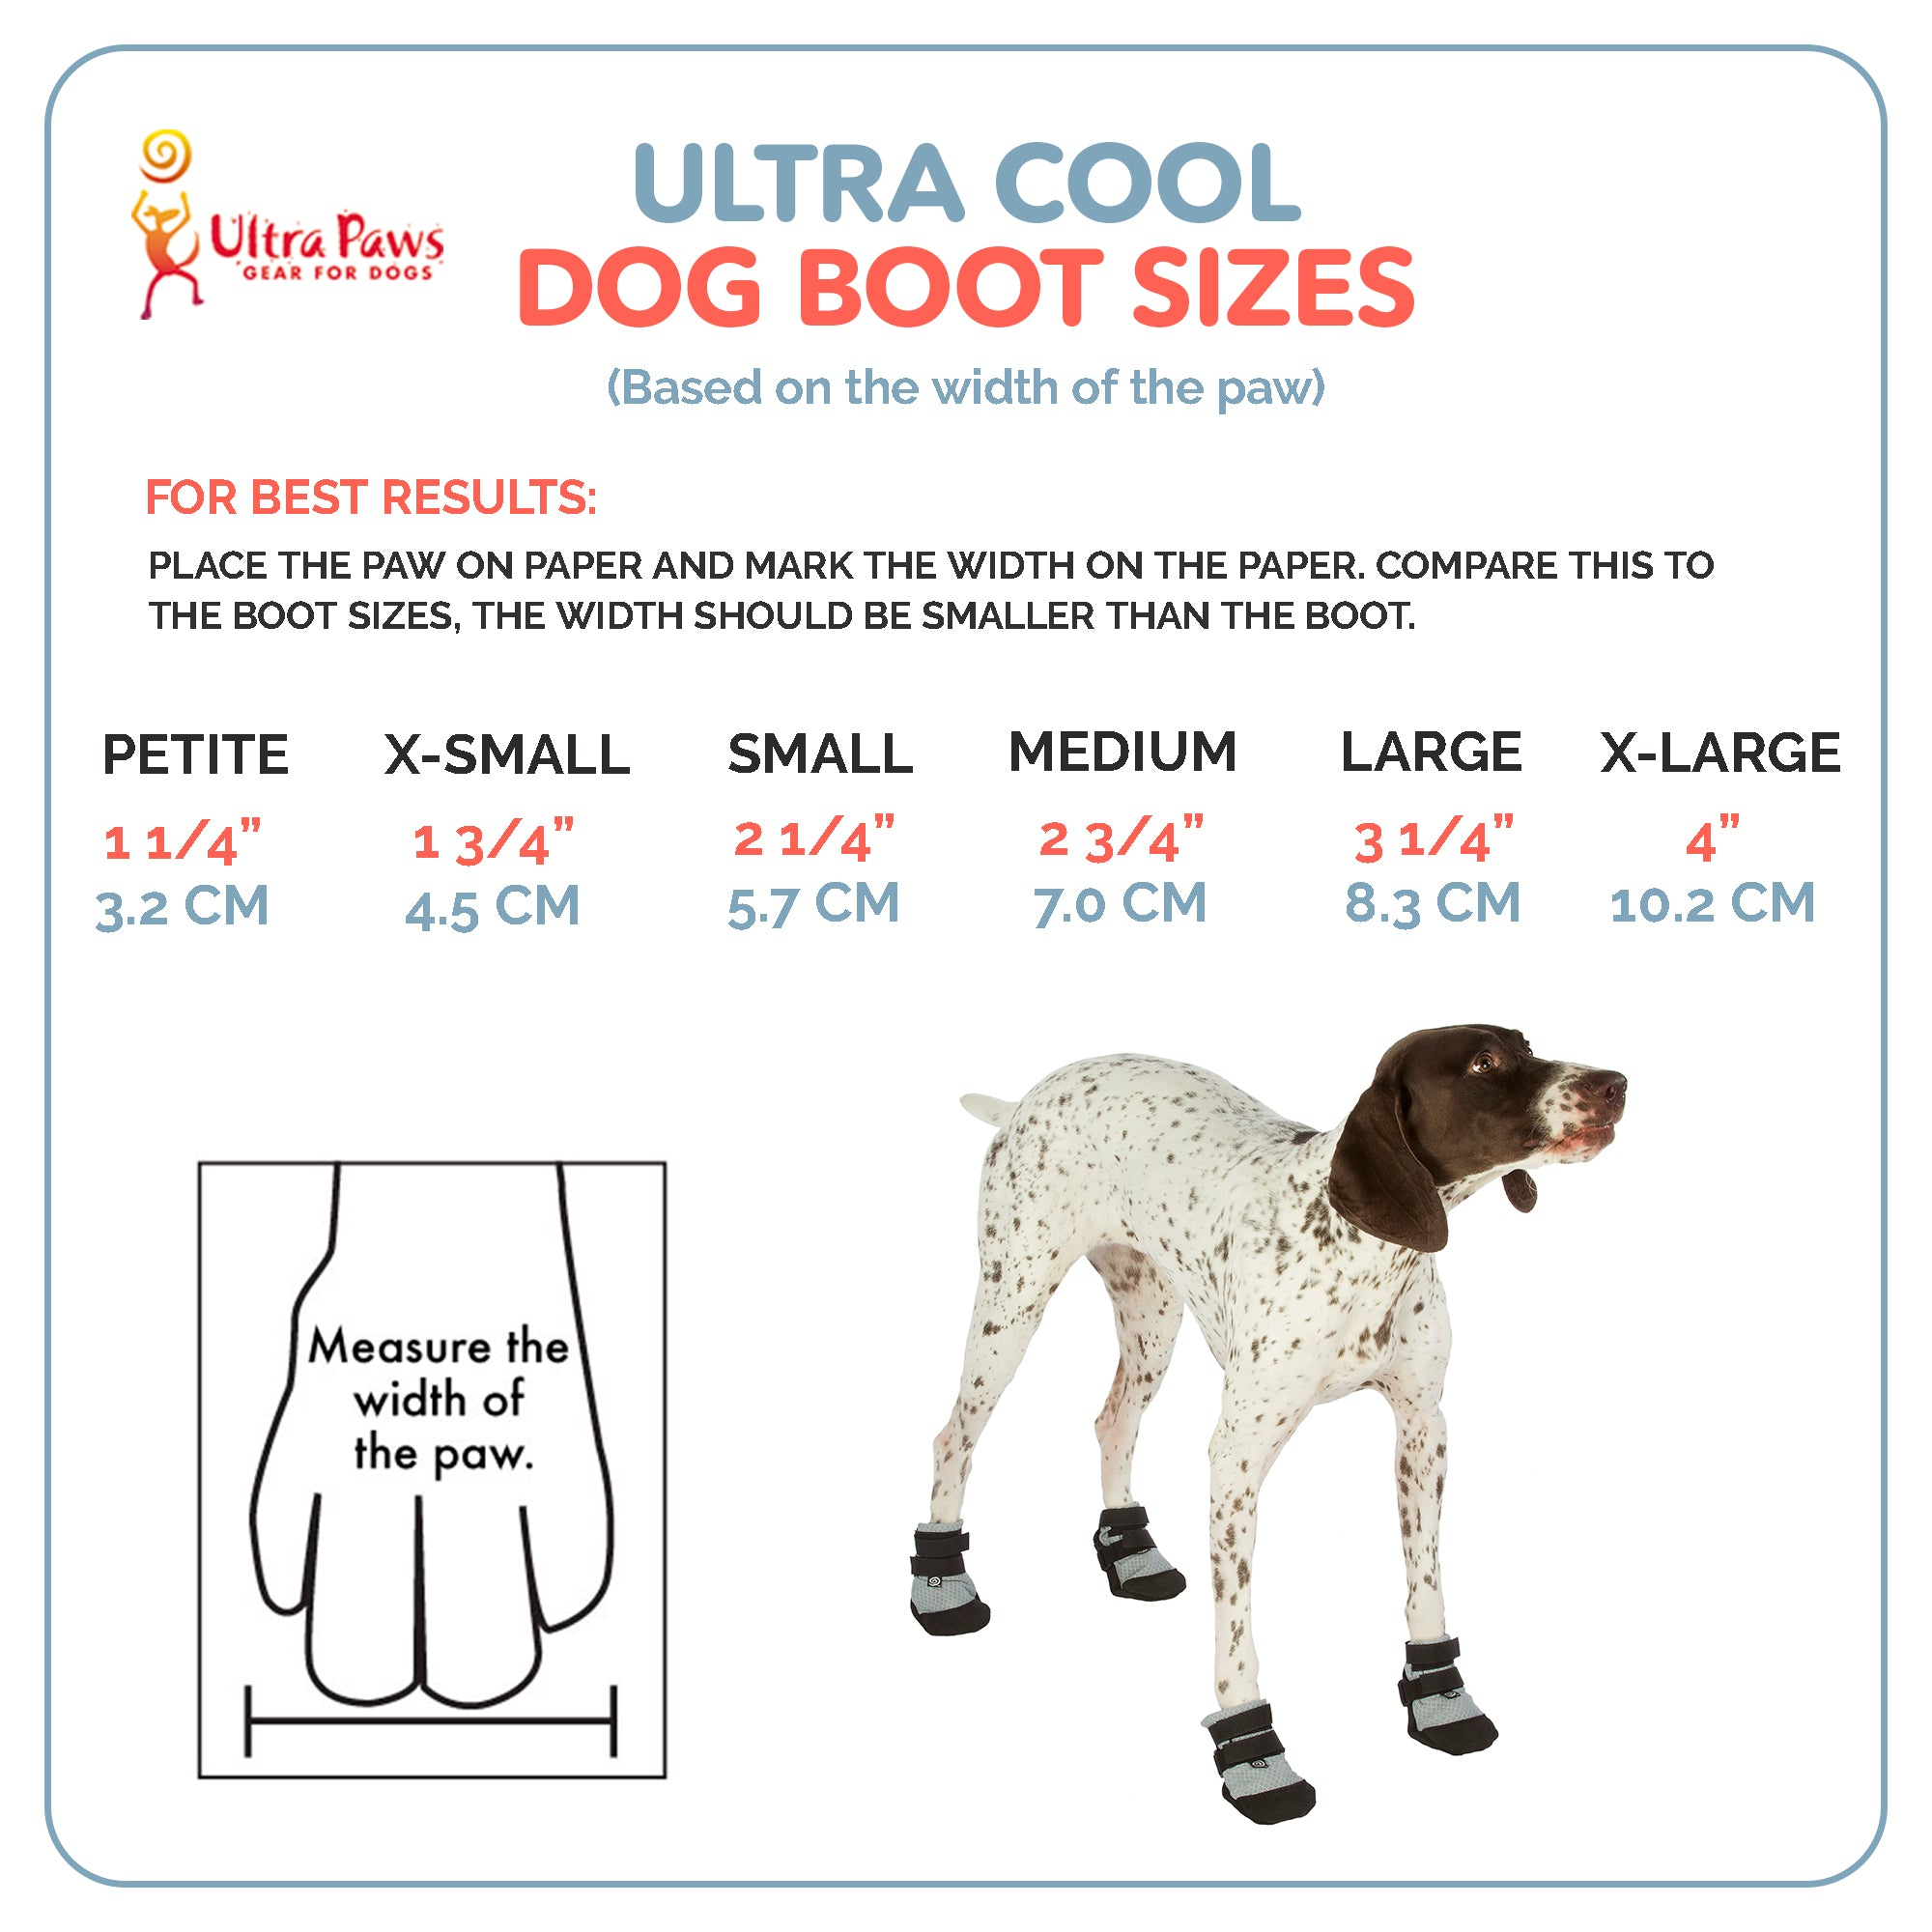 Ultra Paws Ultra Cool Dog Boots Sizing Chart